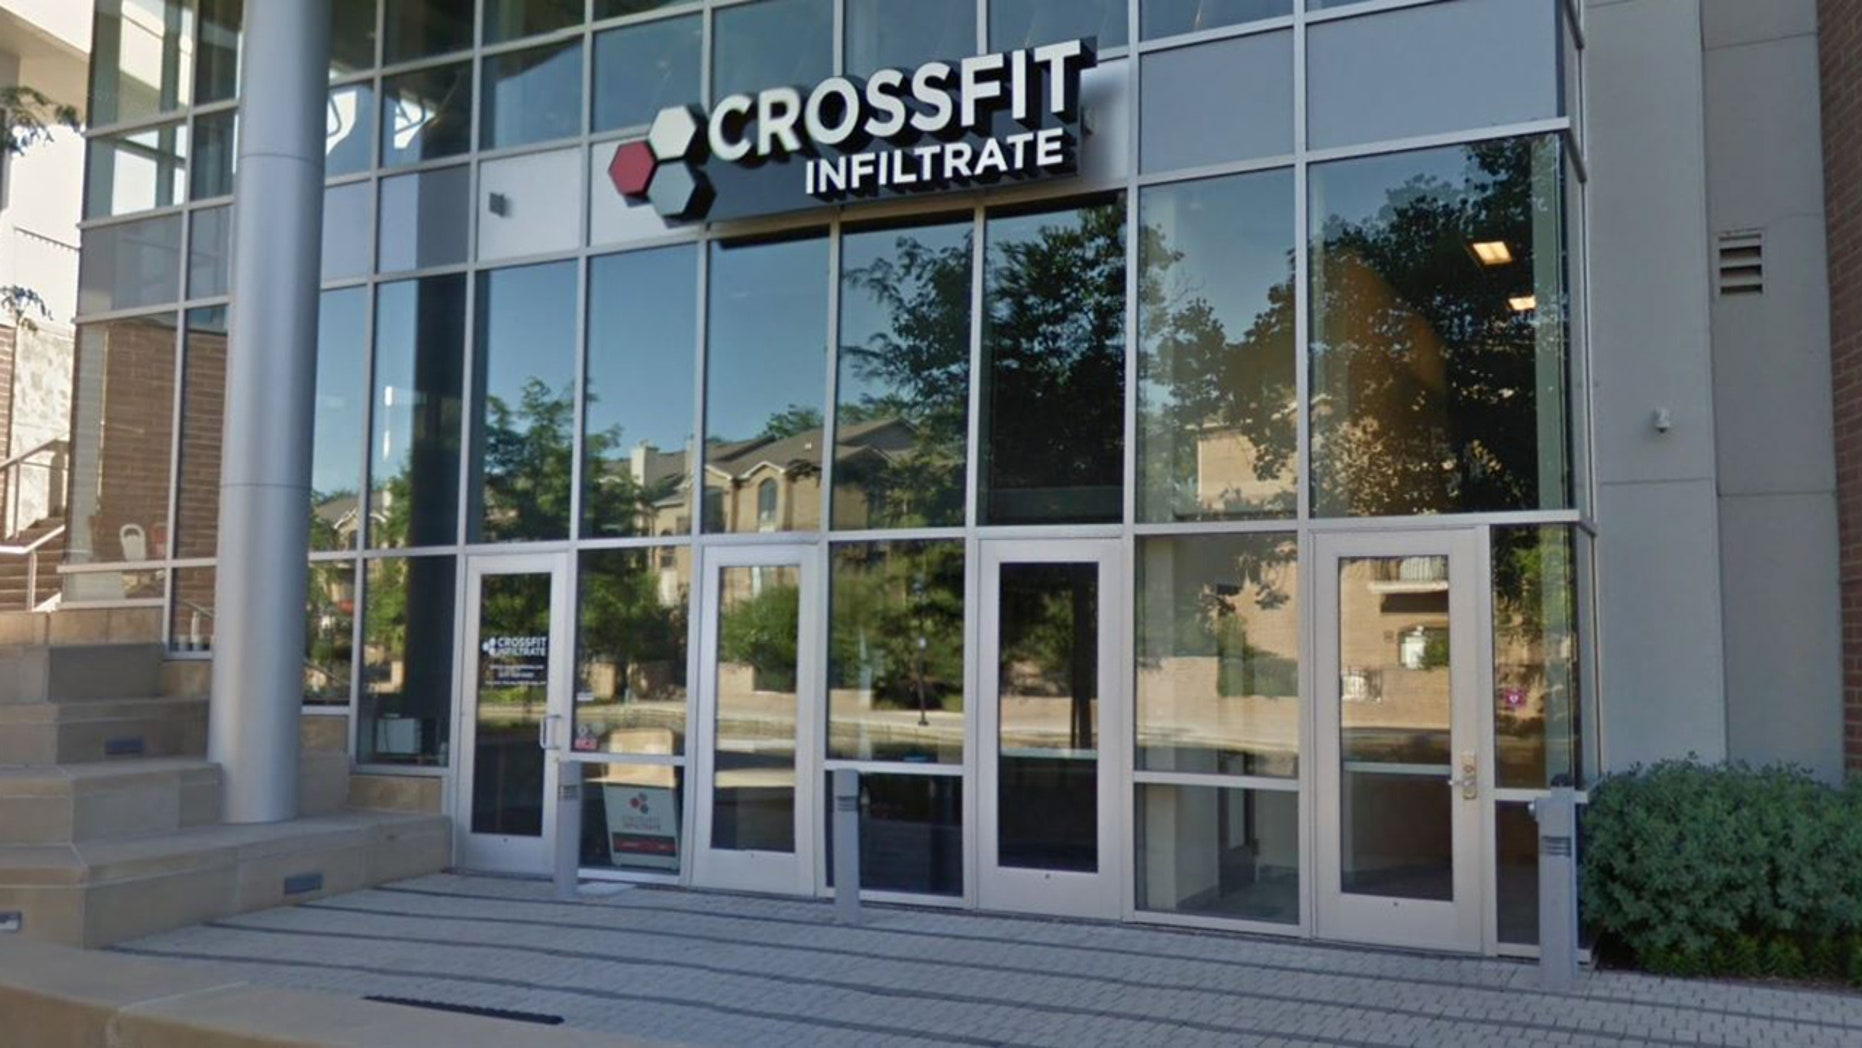 Indiana's CrossFit Infiltrate